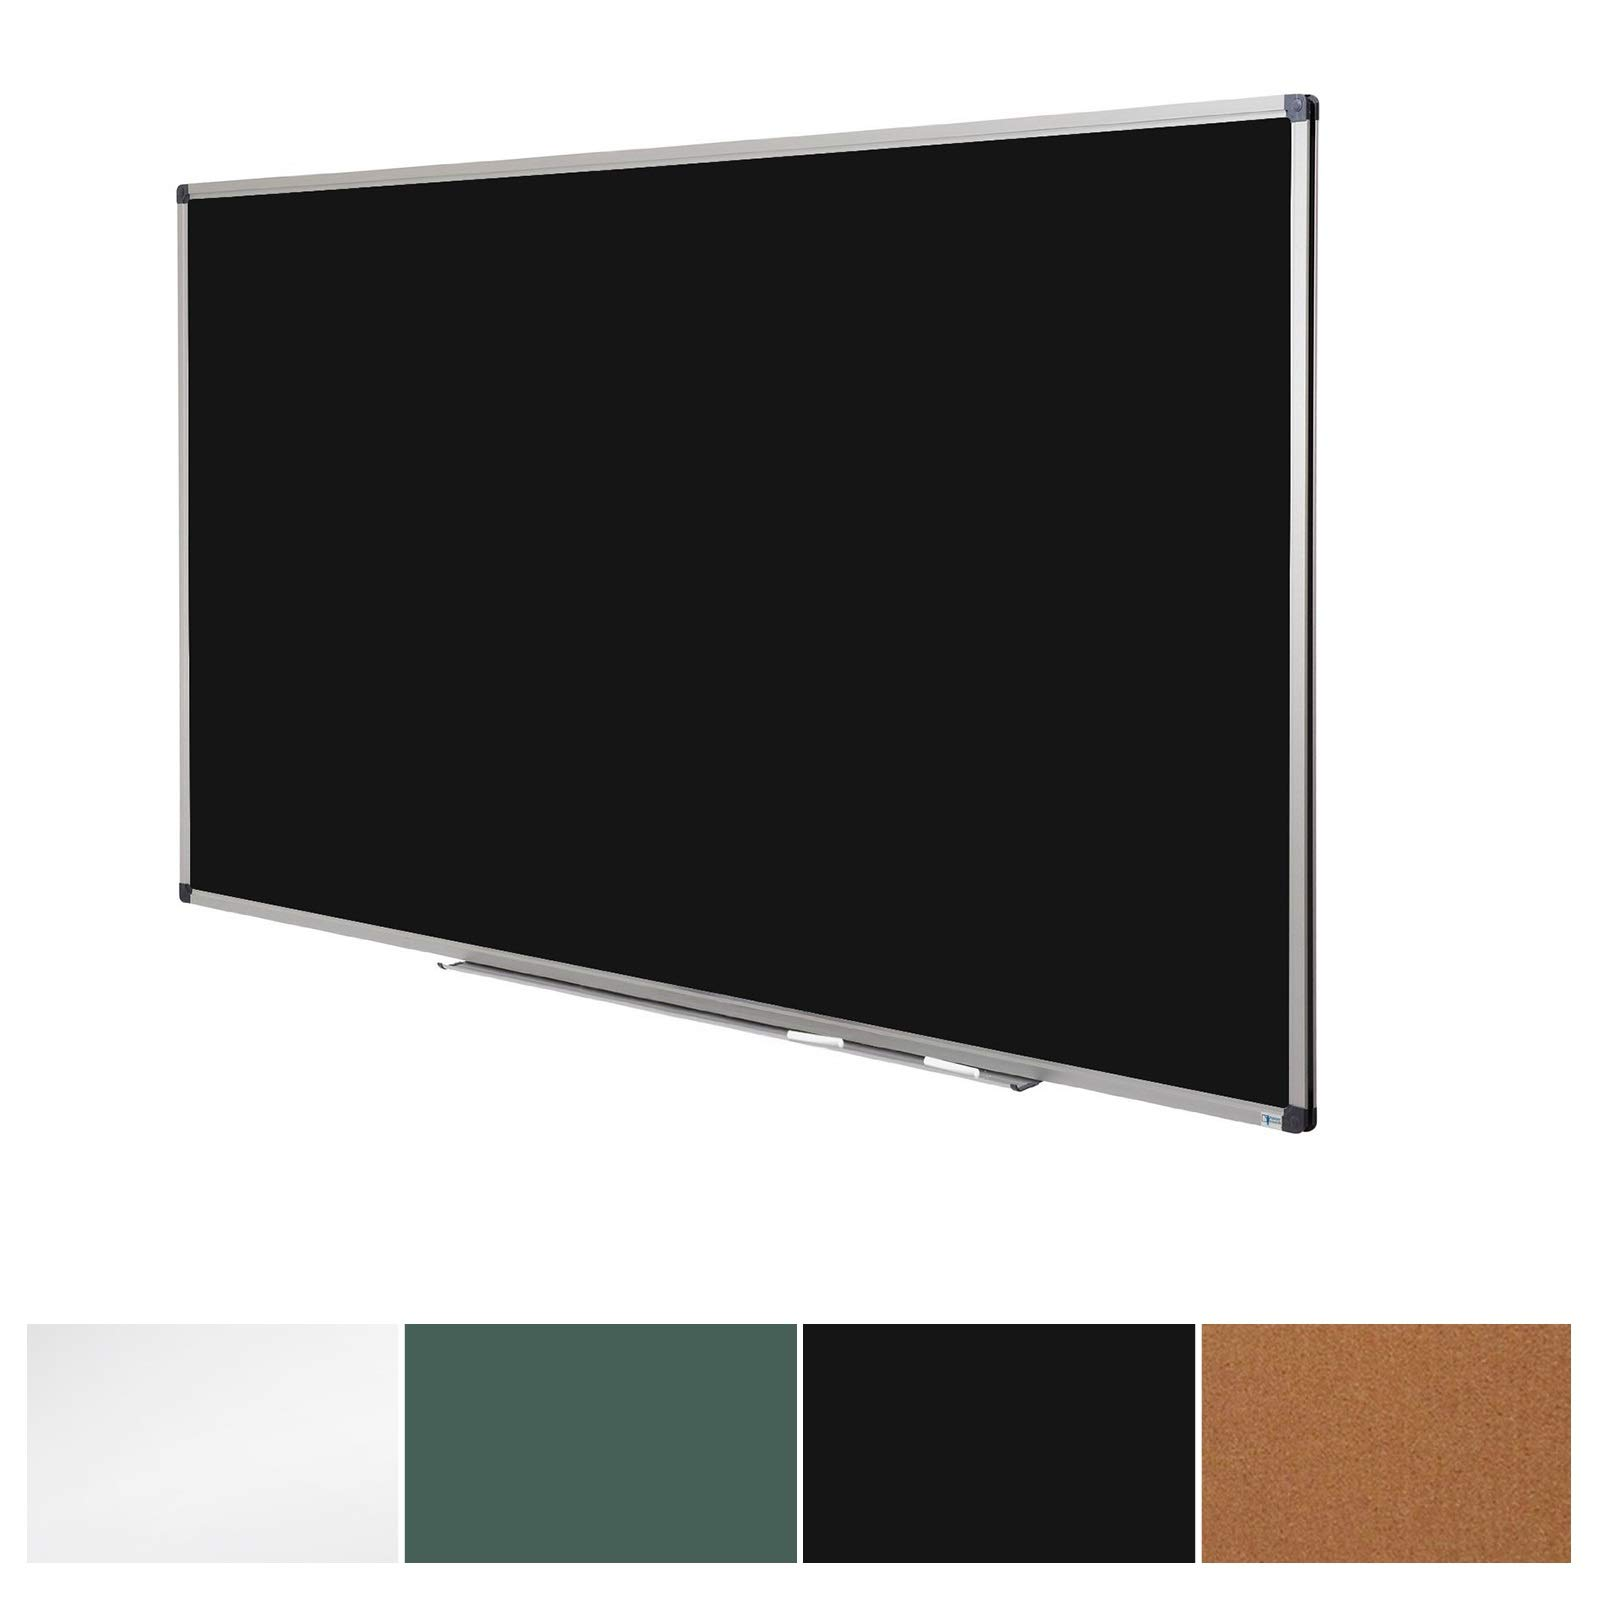 Black Magnetic Chalk Board | Aluminium Framed | Excellent Solution for Art, Notes and Memos | 3 Sizes Available | 18'' x 24'' (1.5'x 2')